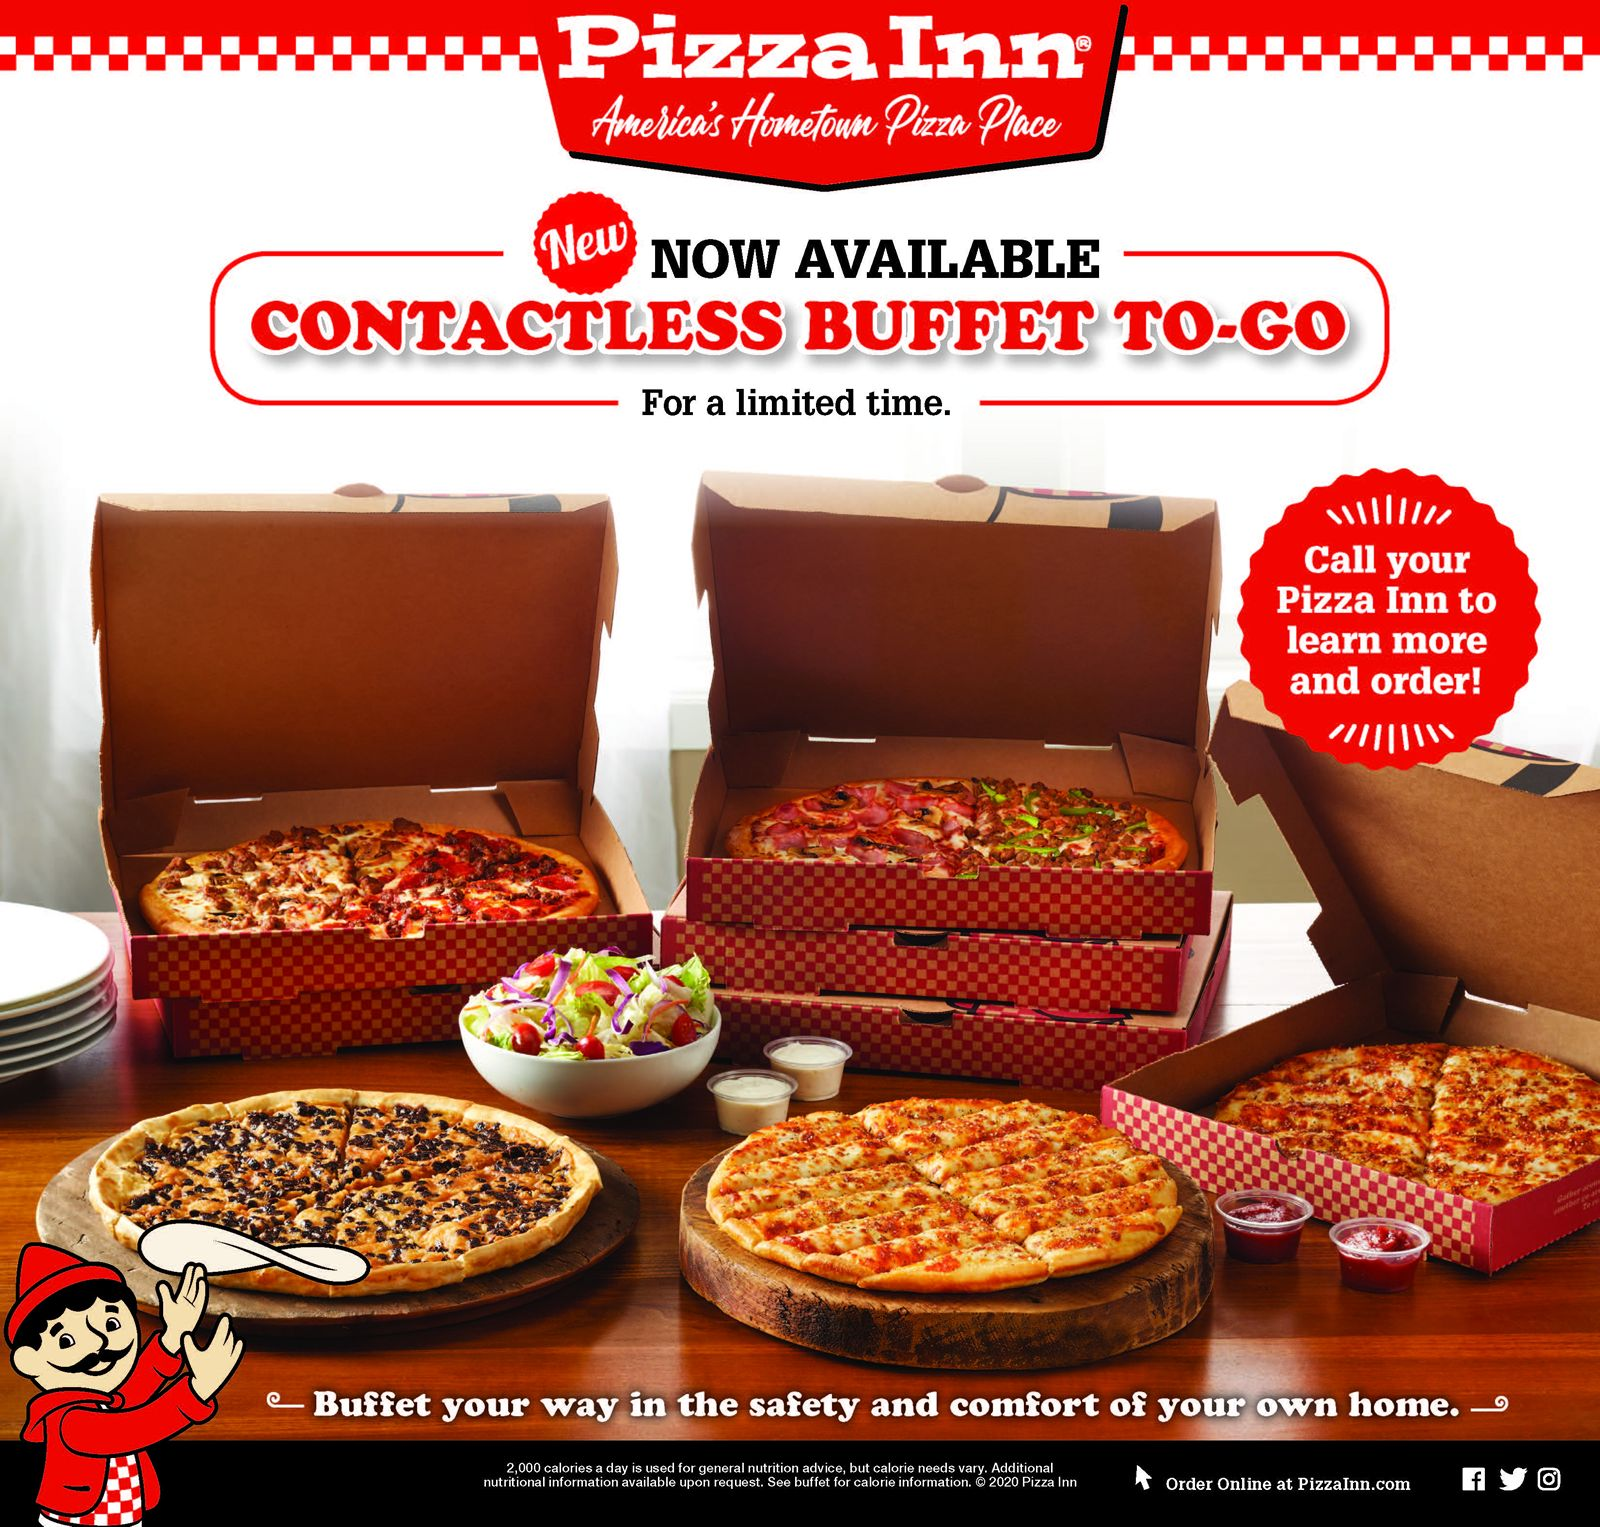 Pizza Inn Launches New Contactless Buffet To Go for Carryout and Delivery